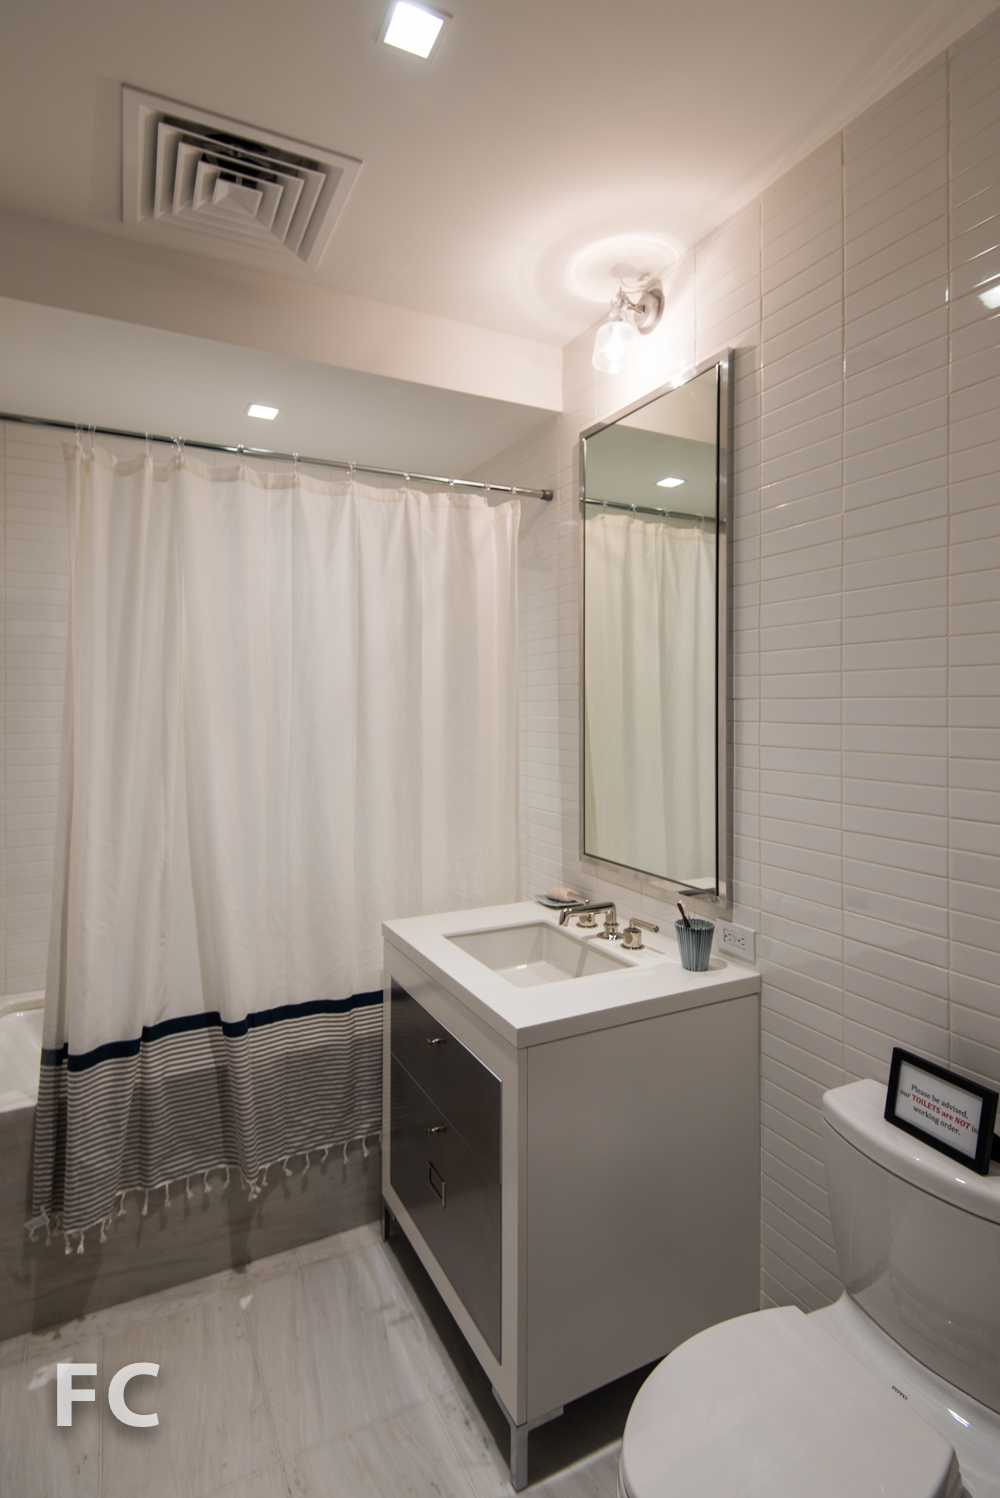 Secondary bathroom with custom white lacquer vanity including water resistant galvanized drawer fronts.